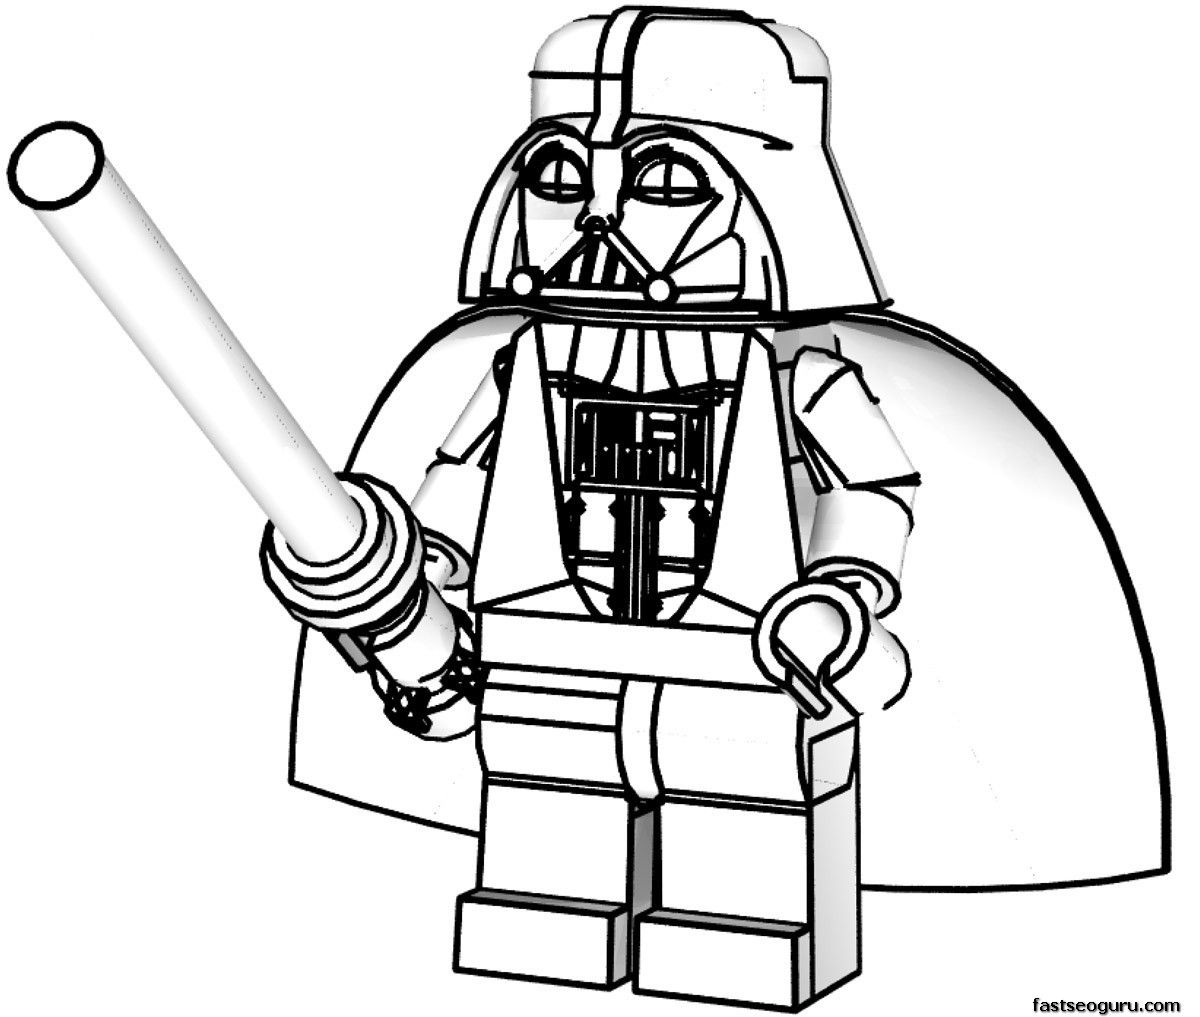 Darth Vader Lego Star Wars Coloring Page Lego Coloring Pages Lego Coloring Ninjago Coloring Pages